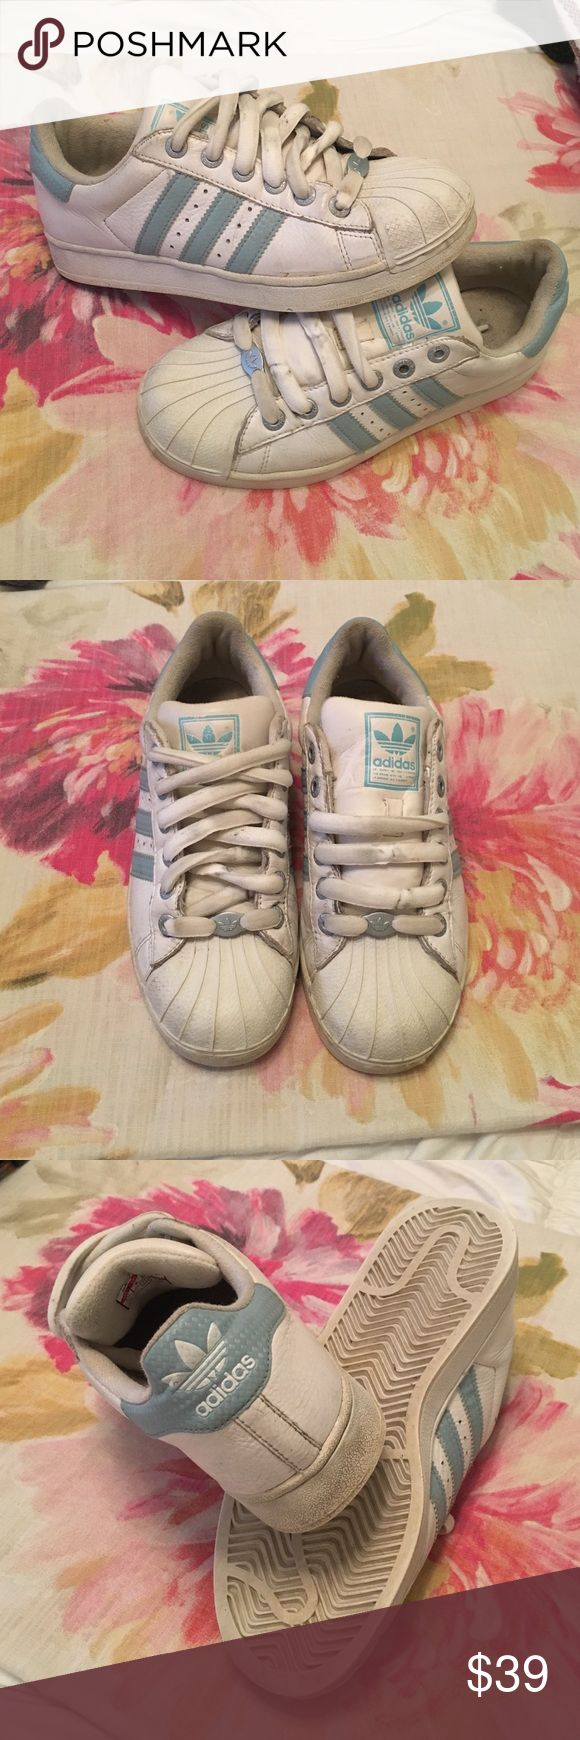 Vintage Baby Blue White Adidas Superstar Sneakers Vintage (from the 90s) adidas sneakers. Not superstar labeled but same style. Size 7.5. TAGS: Brandy Melville superstars sneaker Aqua teal Adidas Shoes Sneakers